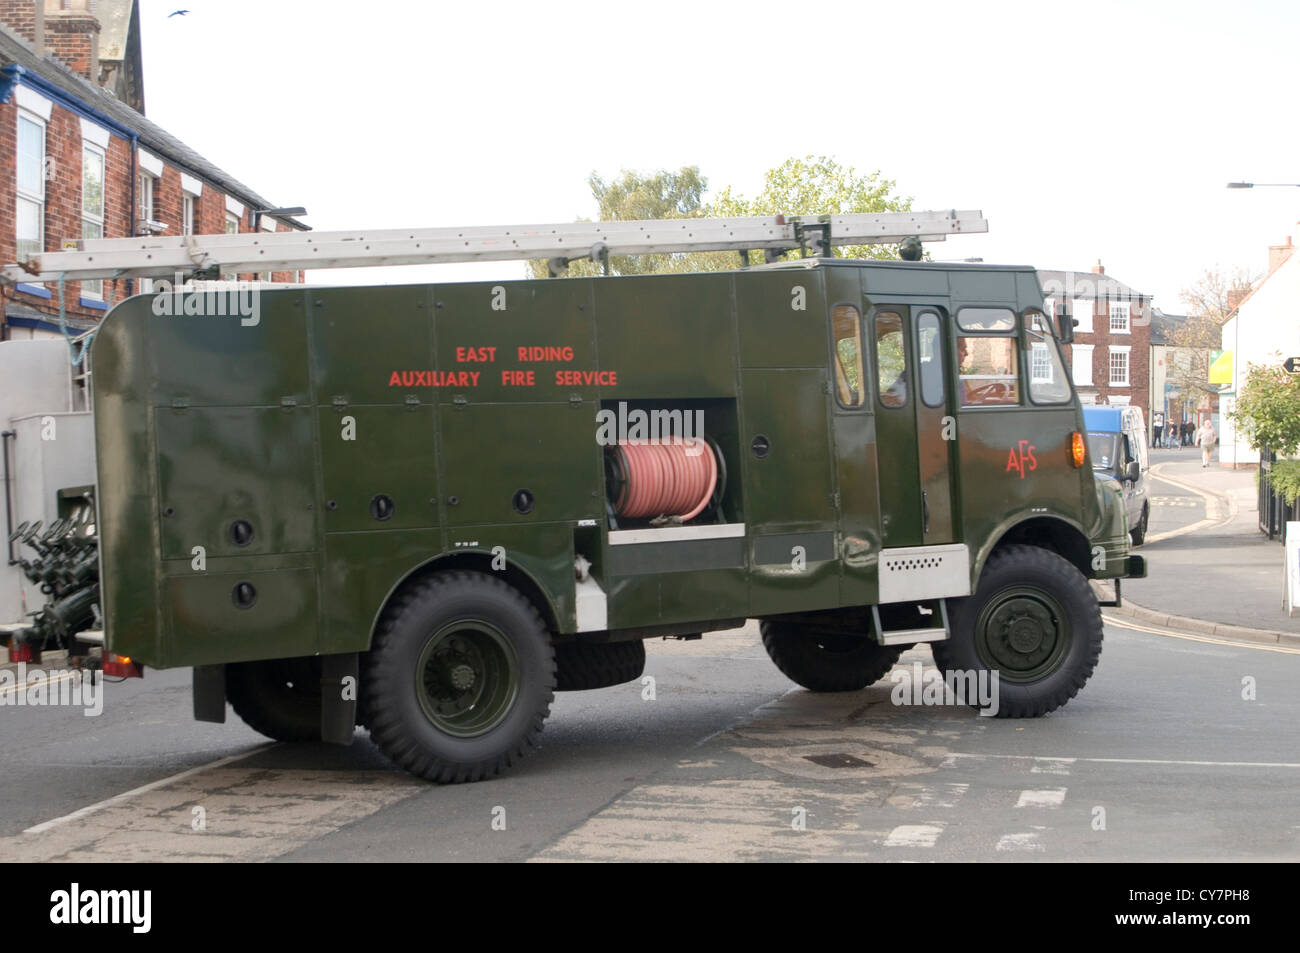 green goddess army fire engine engines auxiliary reserve bedford trucks - Stock Image